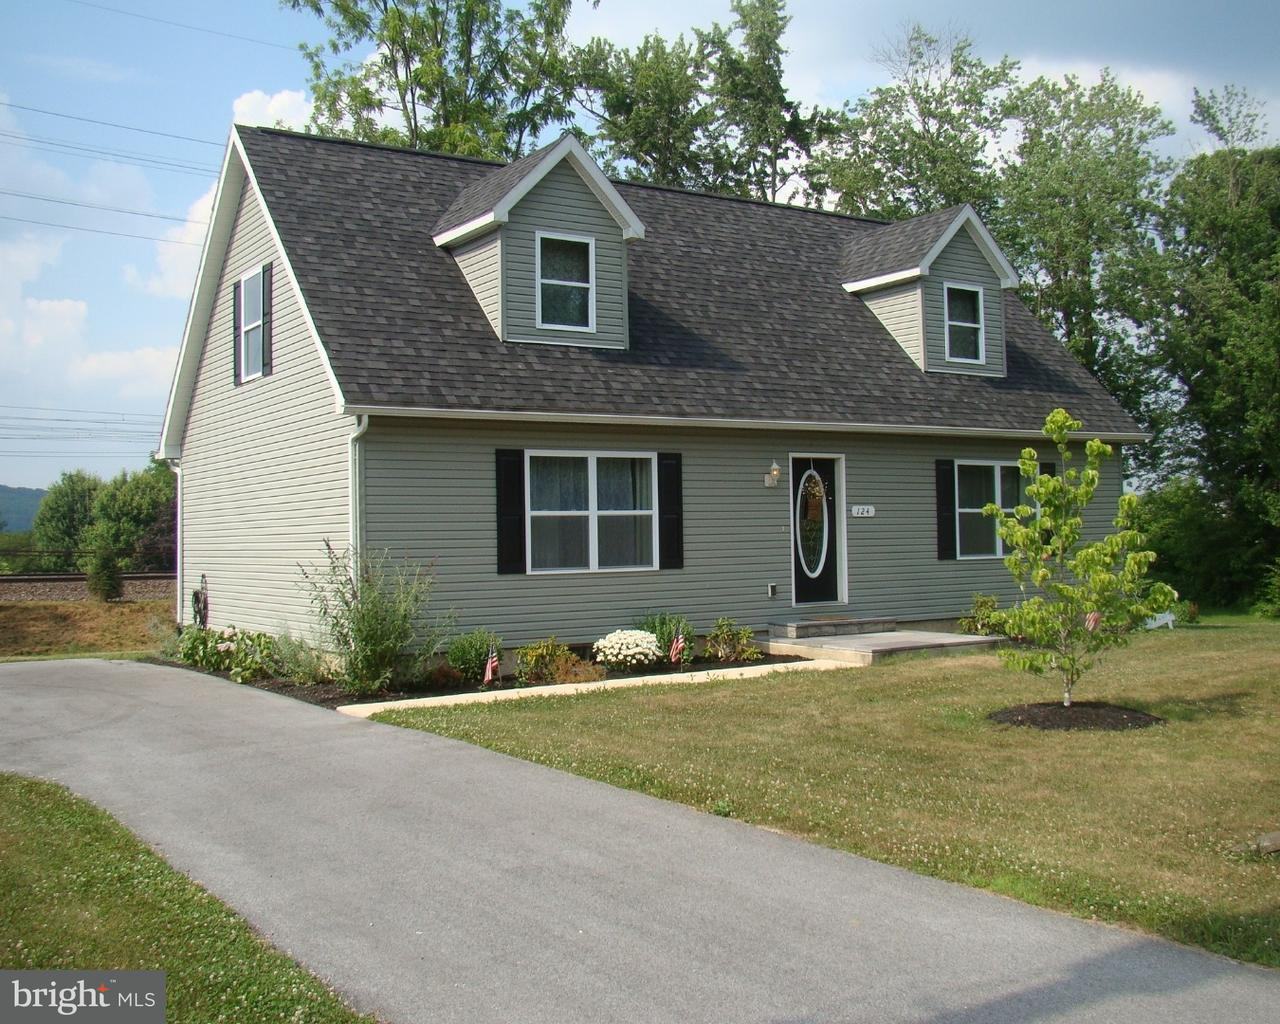 124 S LLOYD AVE, DOWNINGTOWN - Listed at $309,900,